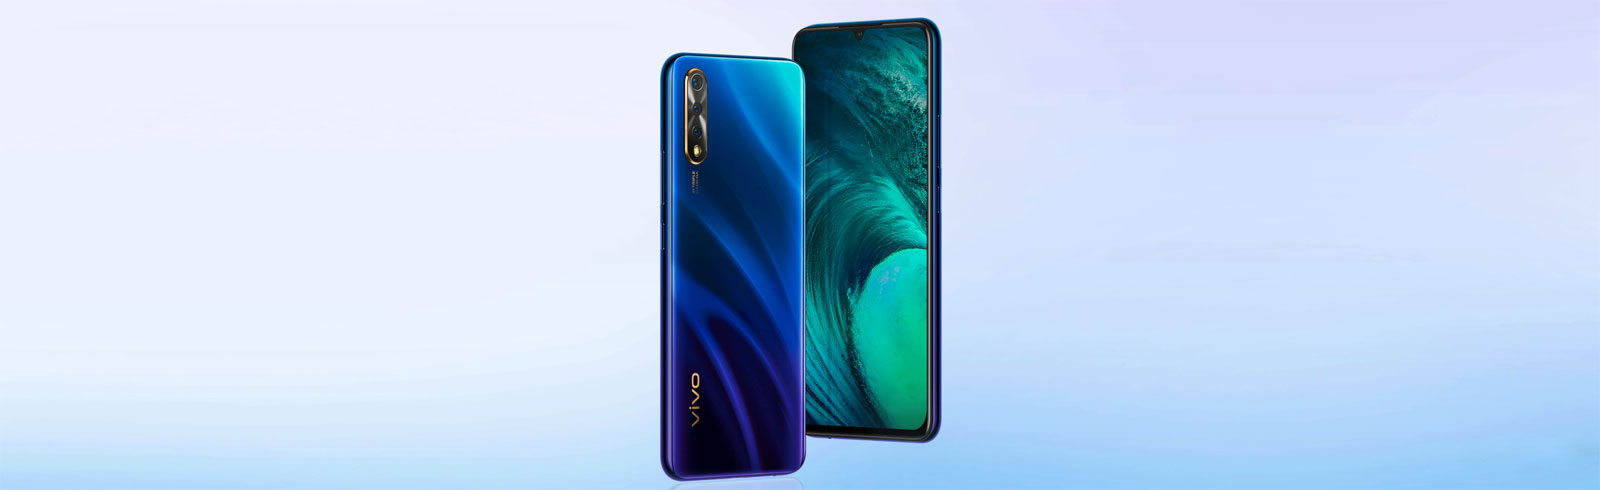 Vivo Indonesia unveils the Vivo S1 with a Helio P65 chipset